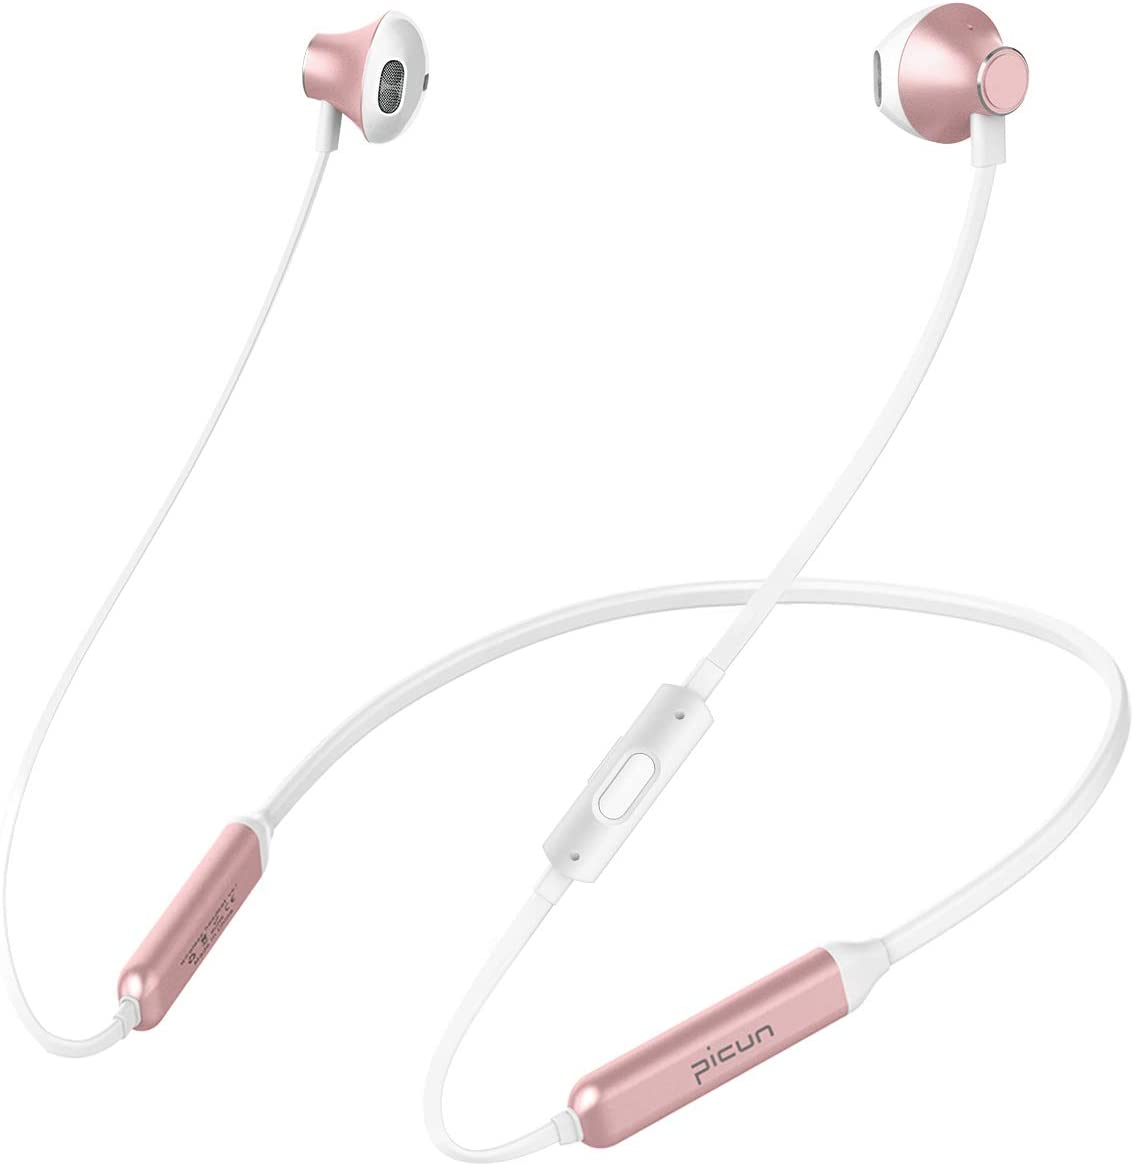 Picun 10 Hrs Playtime Wireless Headphones Bluetooth Neckband Headset, HiFi Bass Sports Sweatproof Noise Cancelling Stereo Magnetic Earphones with Mic, 13 MM Driver, for Workout Running Gym Rose Gold